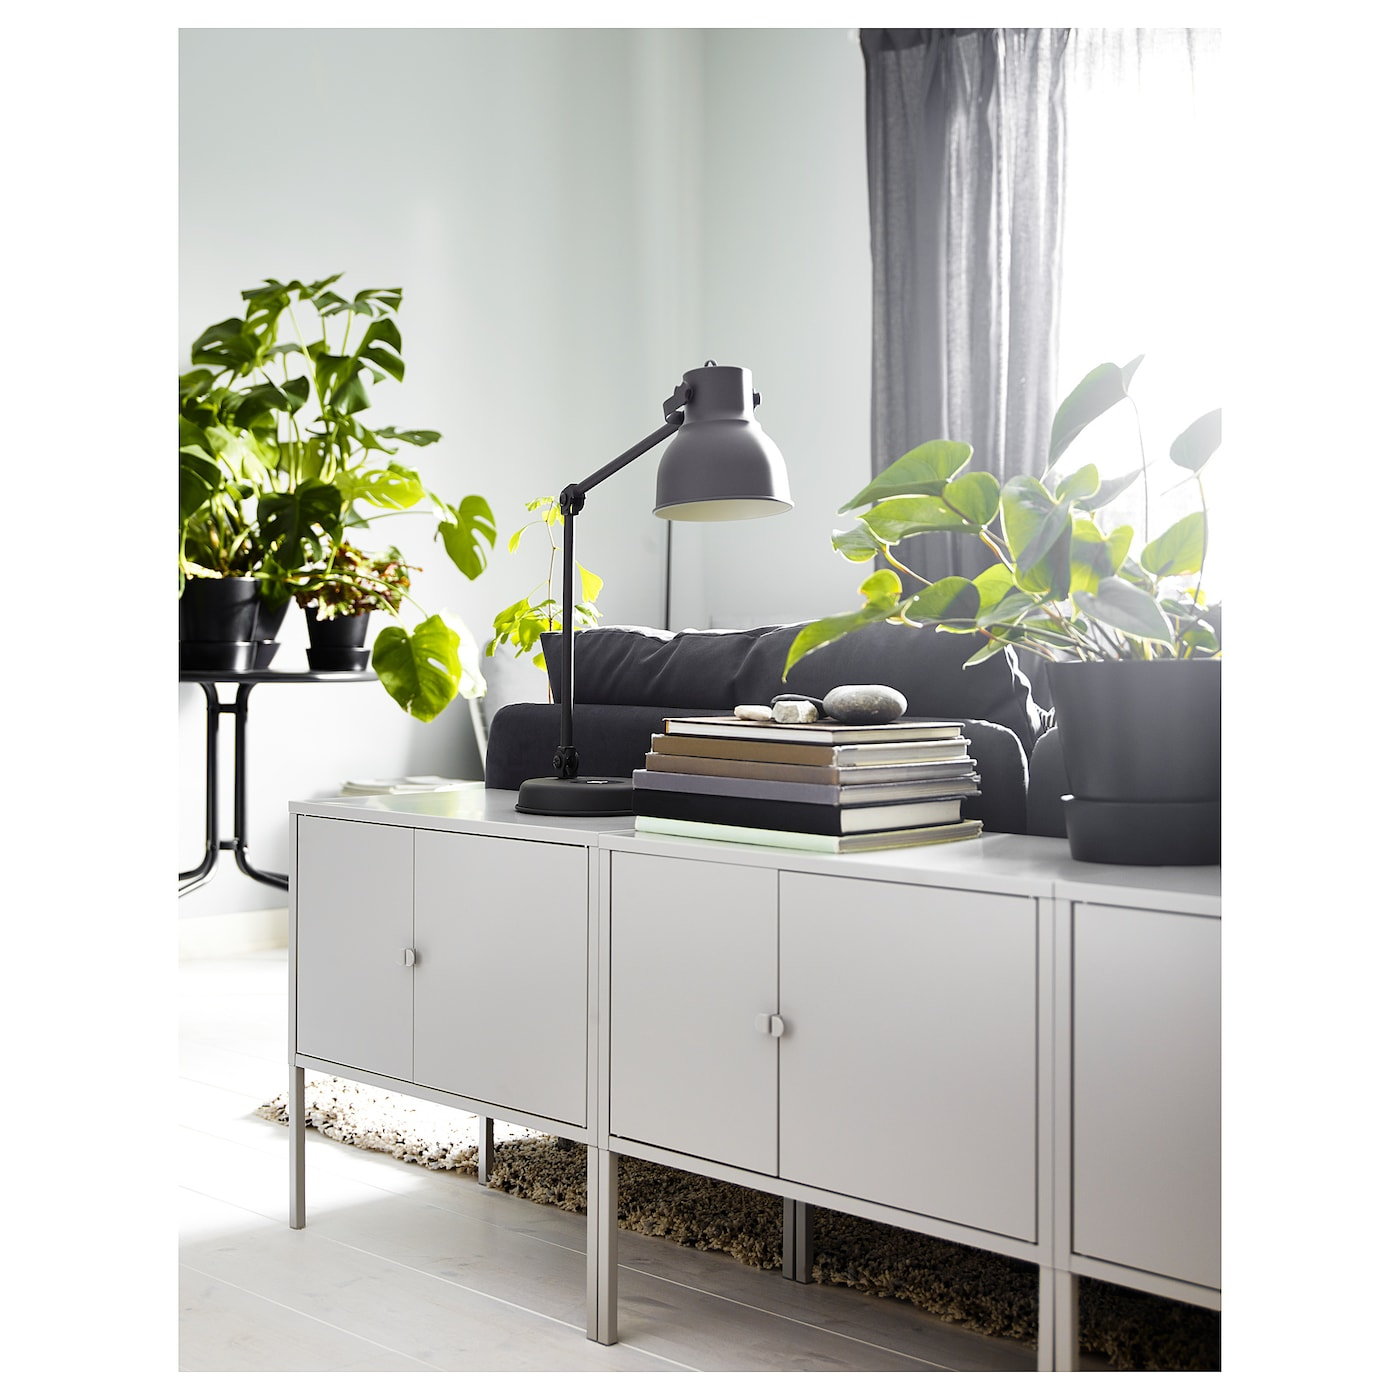 Picture of: Lixhult Skab Metal Gra 60×35 Cm Ikea